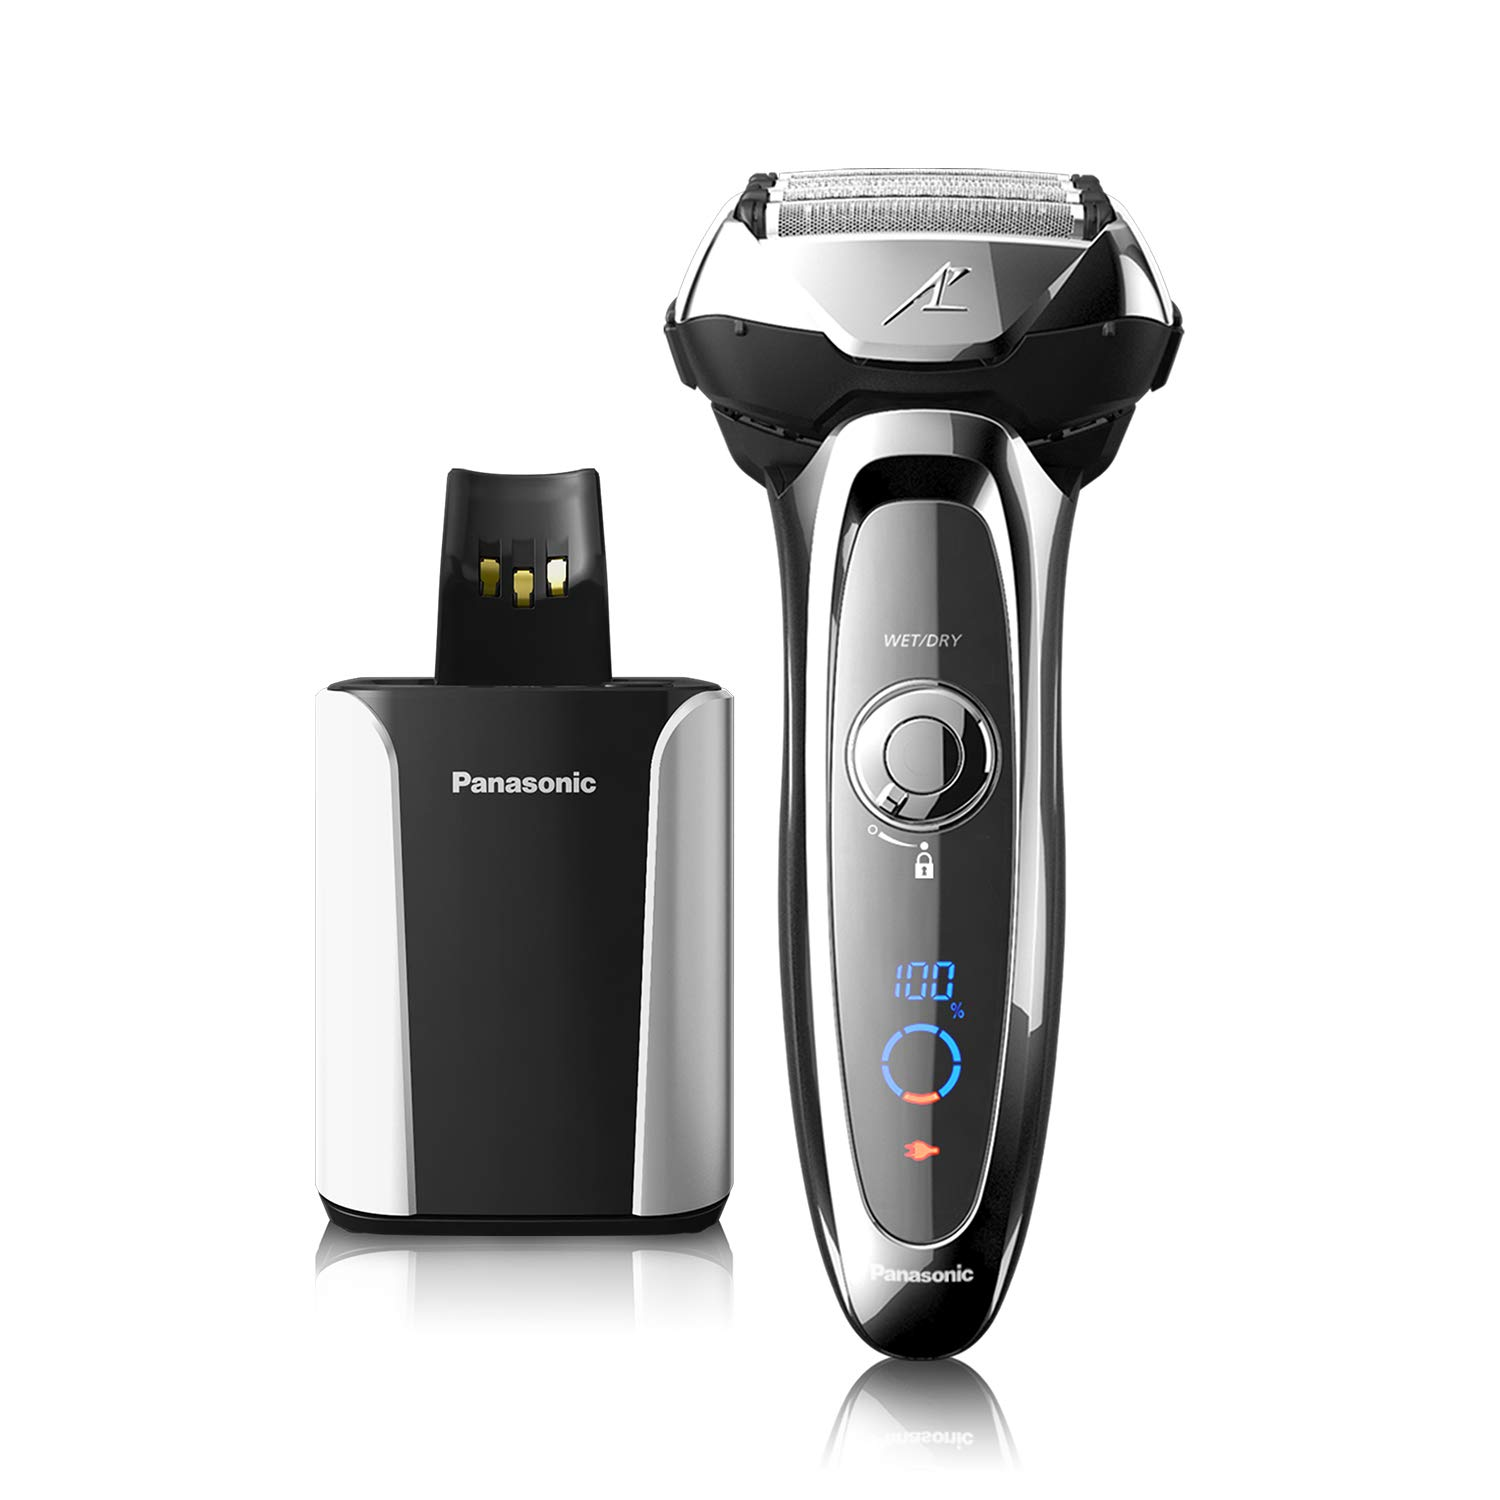 Best Foil Shaver in 2020: Reviews & Buying Guide 7